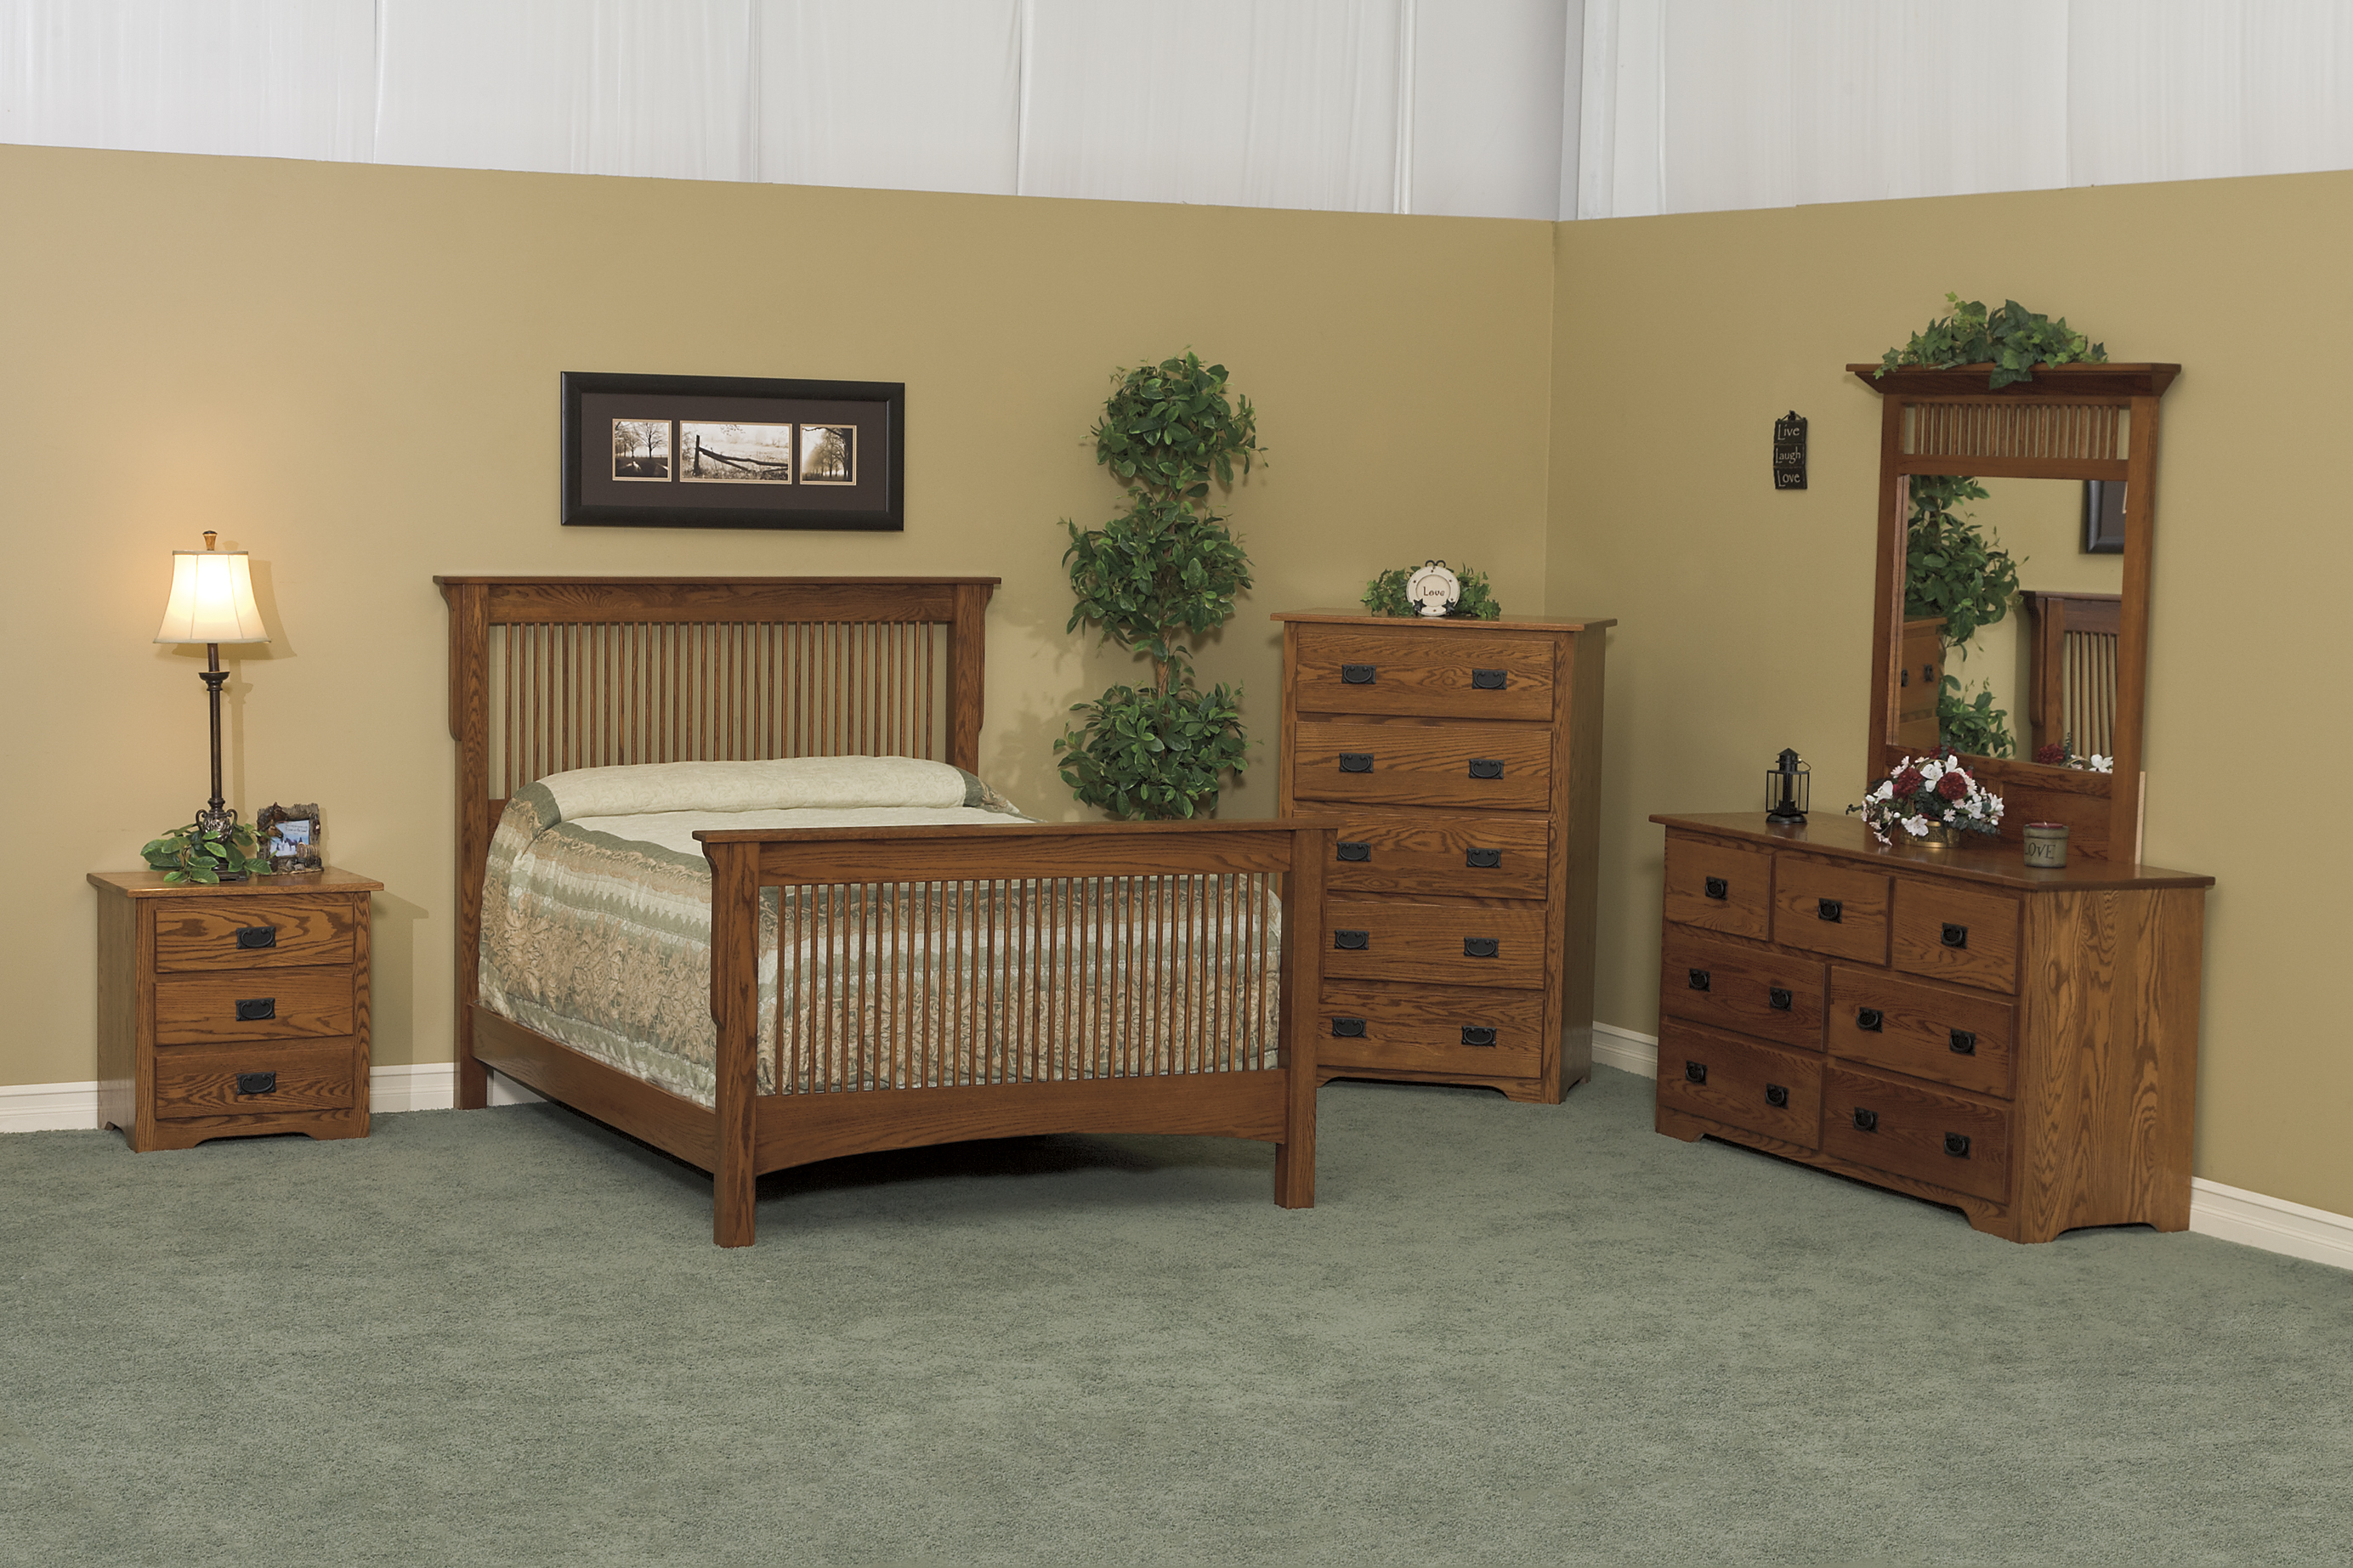 Great  bedroom set bed nightstand Mission Bed Beds Amish Furniture 2768 x 1845 · 3163 kB · jpeg